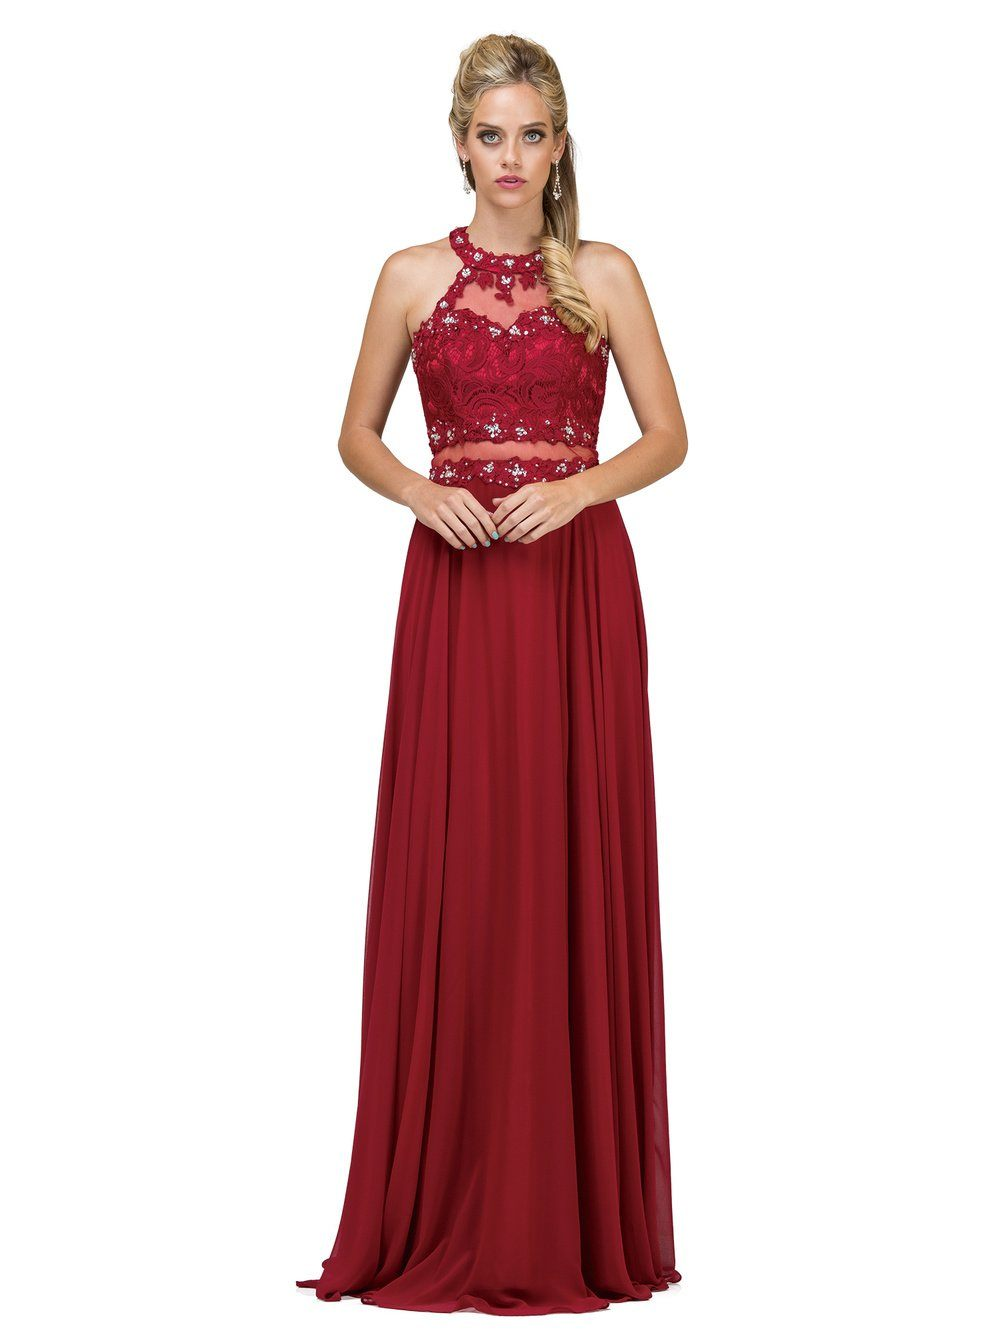 lace mock twopiece cute prom dress dq9548 – simply fab dress